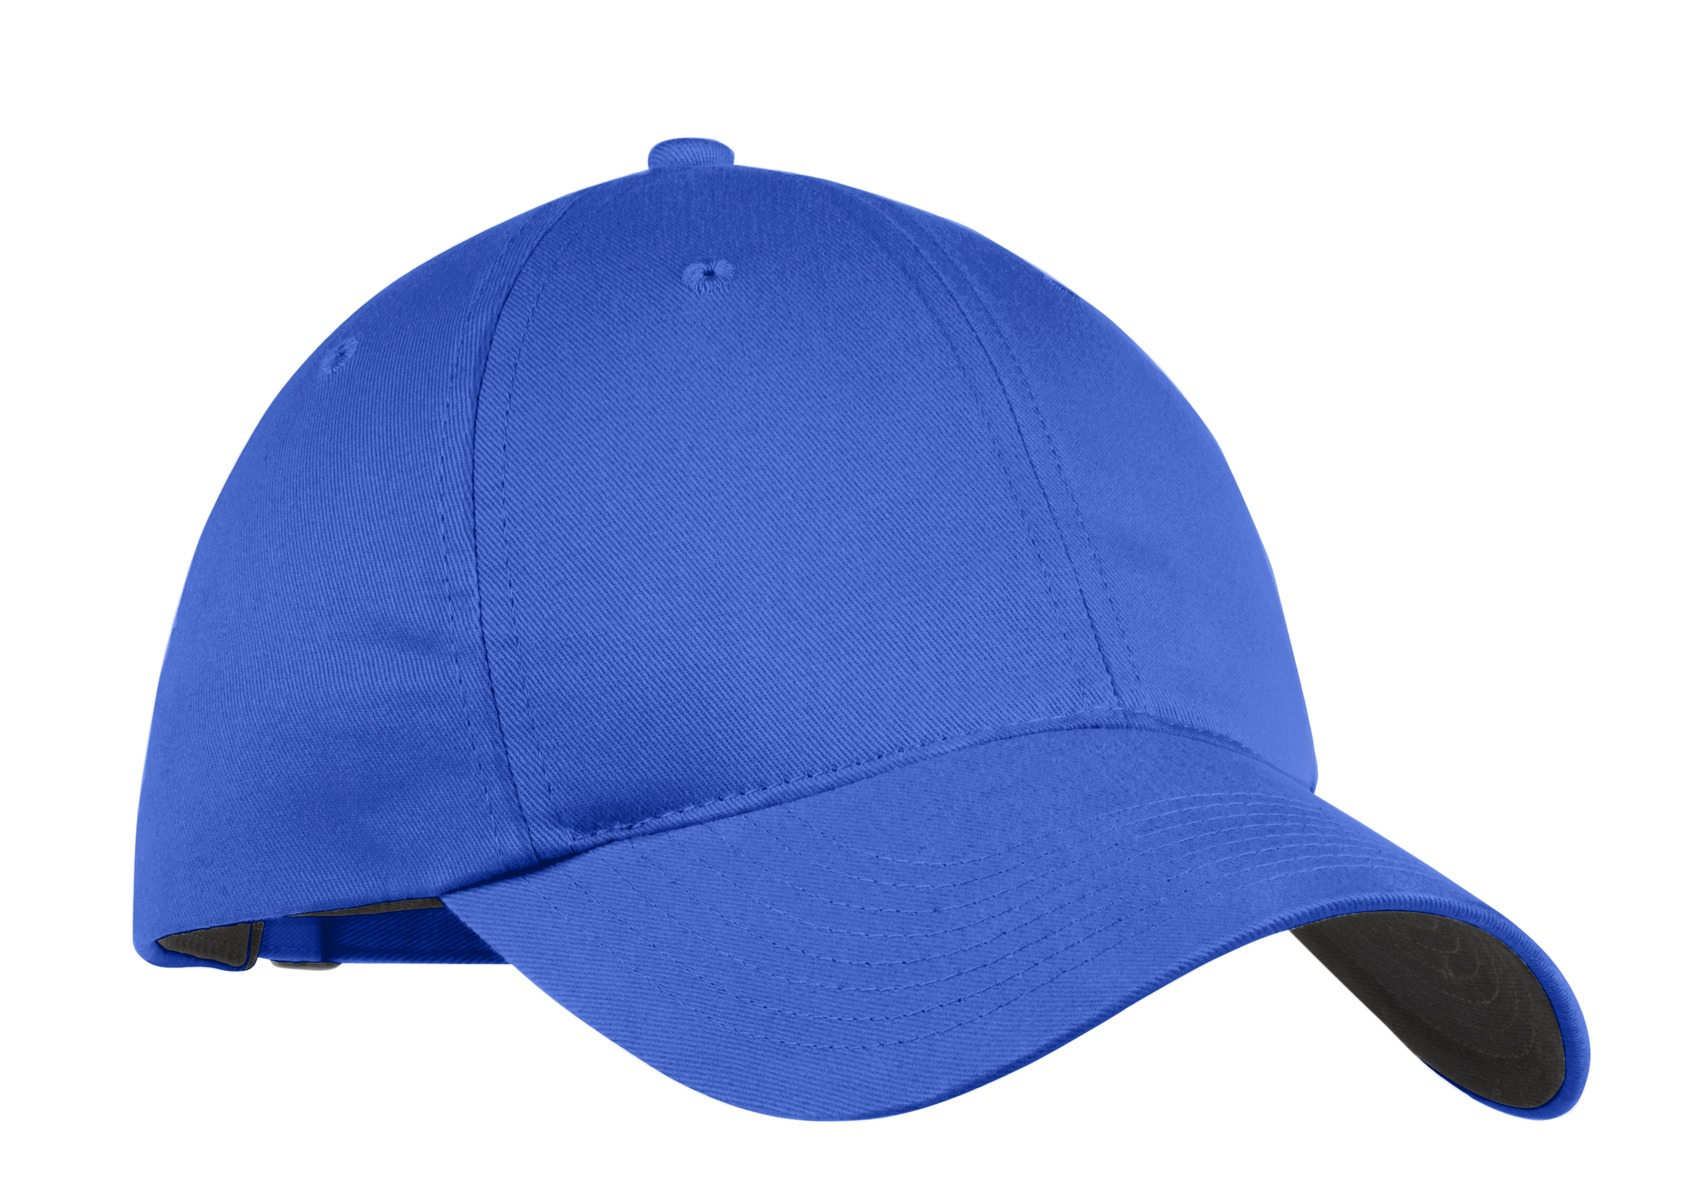 Nike Unstructured Twill Cap.  580087 - Game Royal